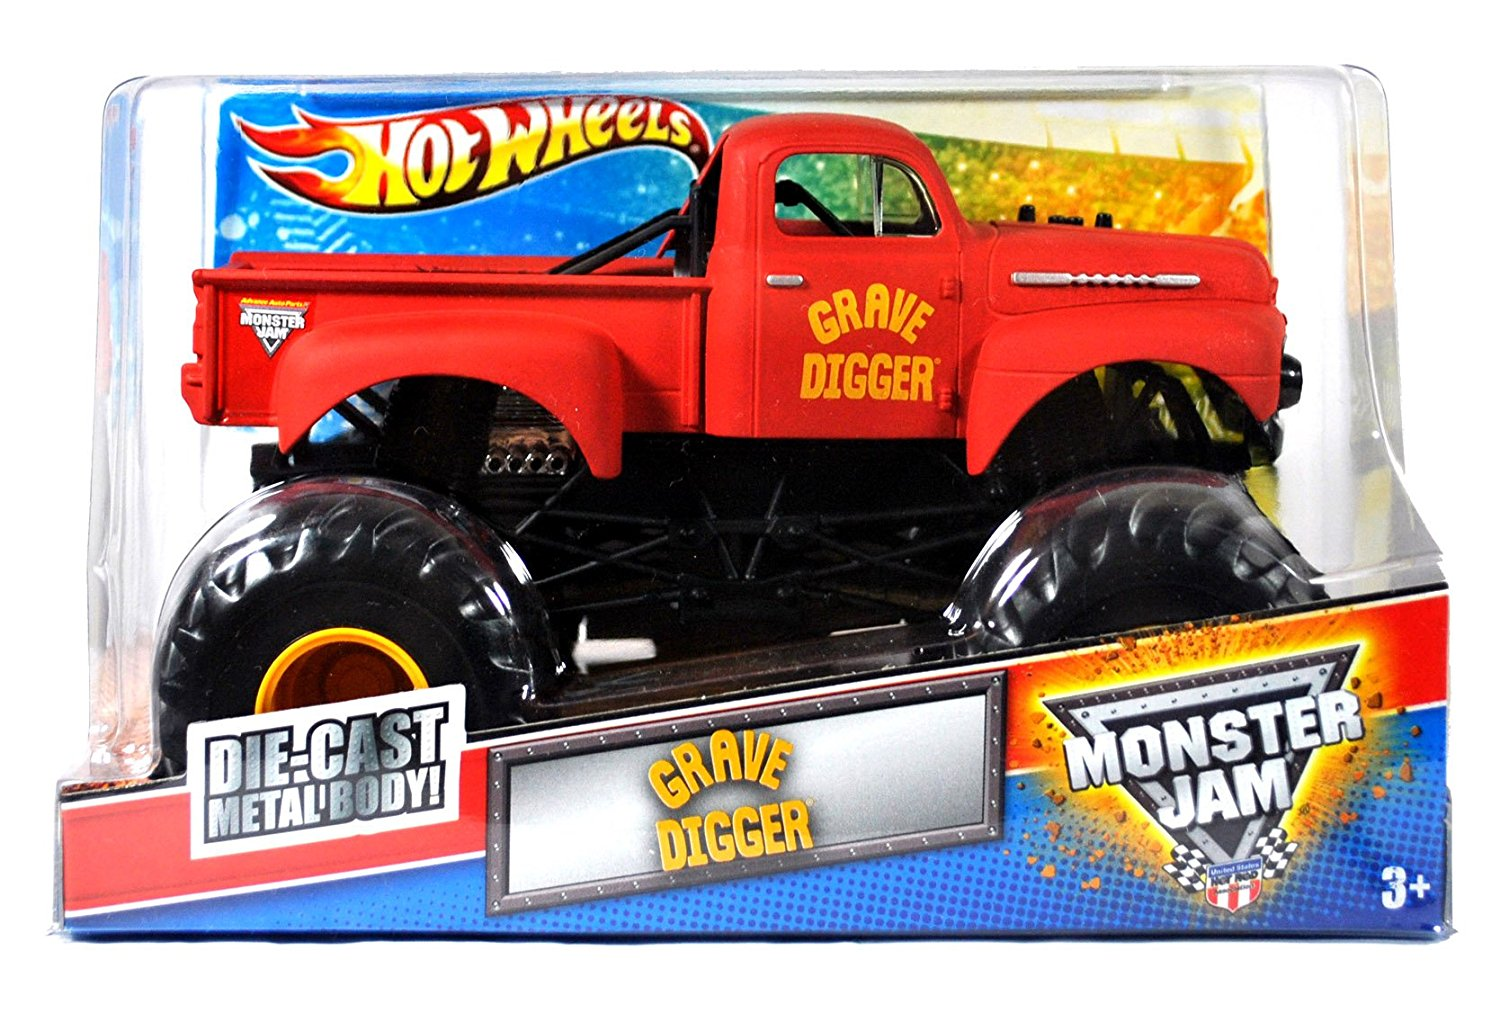 "Hot Wheels Monster Jam 1:24 Scale Die Cast Metal Body Official Monster Truck 2011 Series #T8513 - Dennis Anderson Red 1952 Ford Pick Up Mud Bogger aka GRAVE DIGGER with Monster Tires, Working Suspension and 4 Wheel Steering (Dimension : 7"" L x 5-1/2"" W x 4-1/2"" H)"